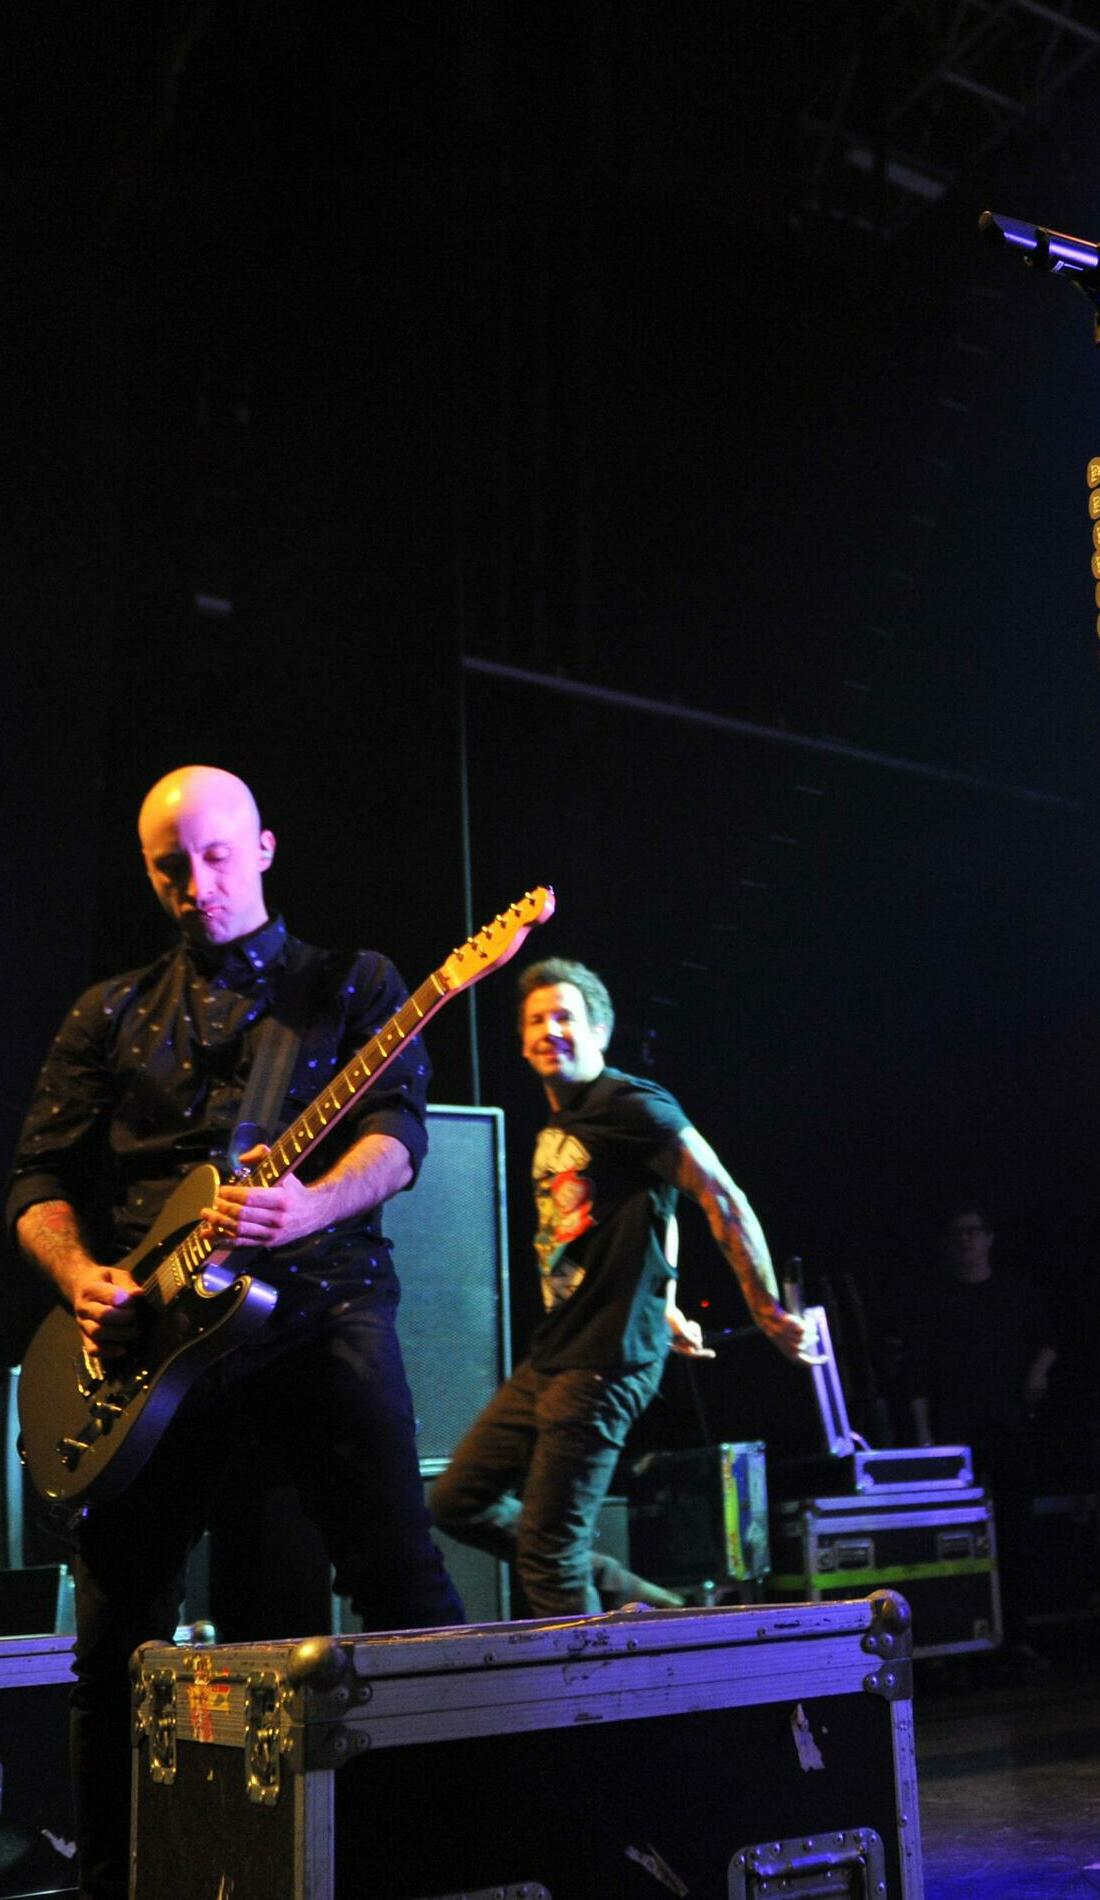 A Simple Plan live event